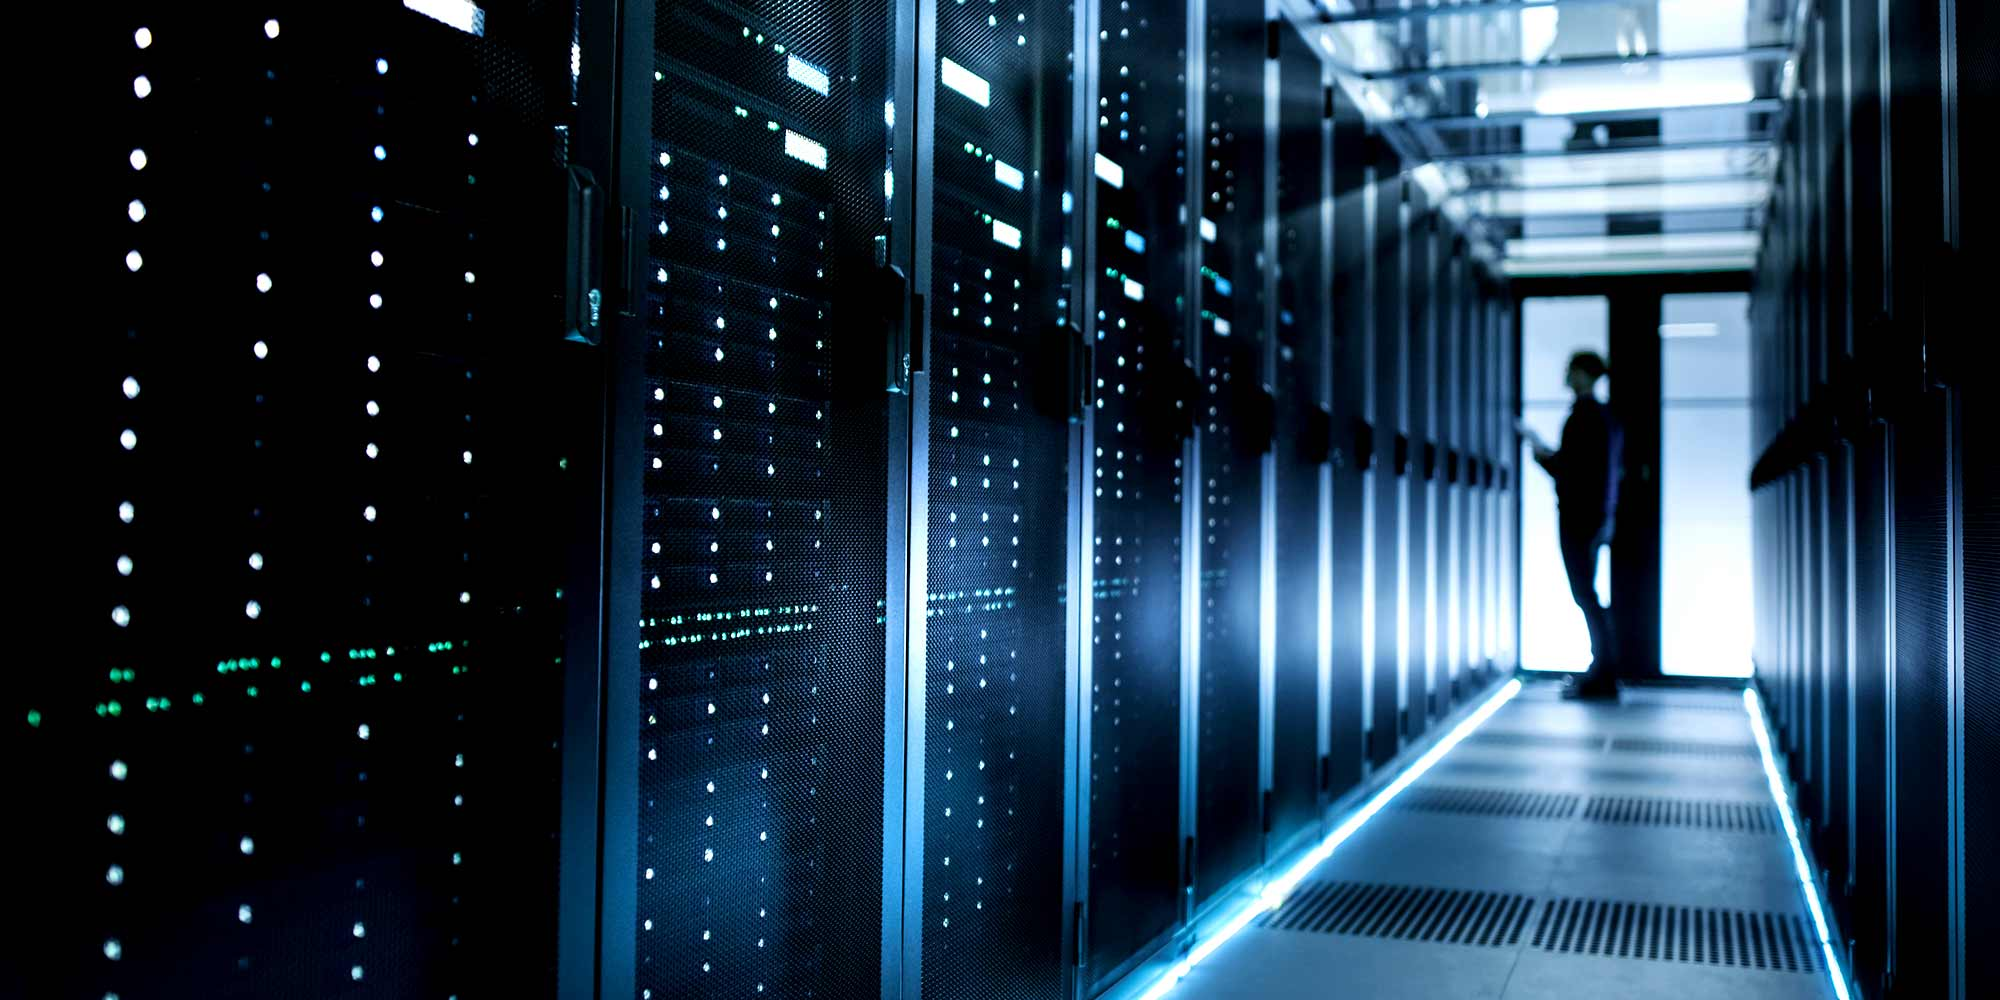 Numbers financial database download service